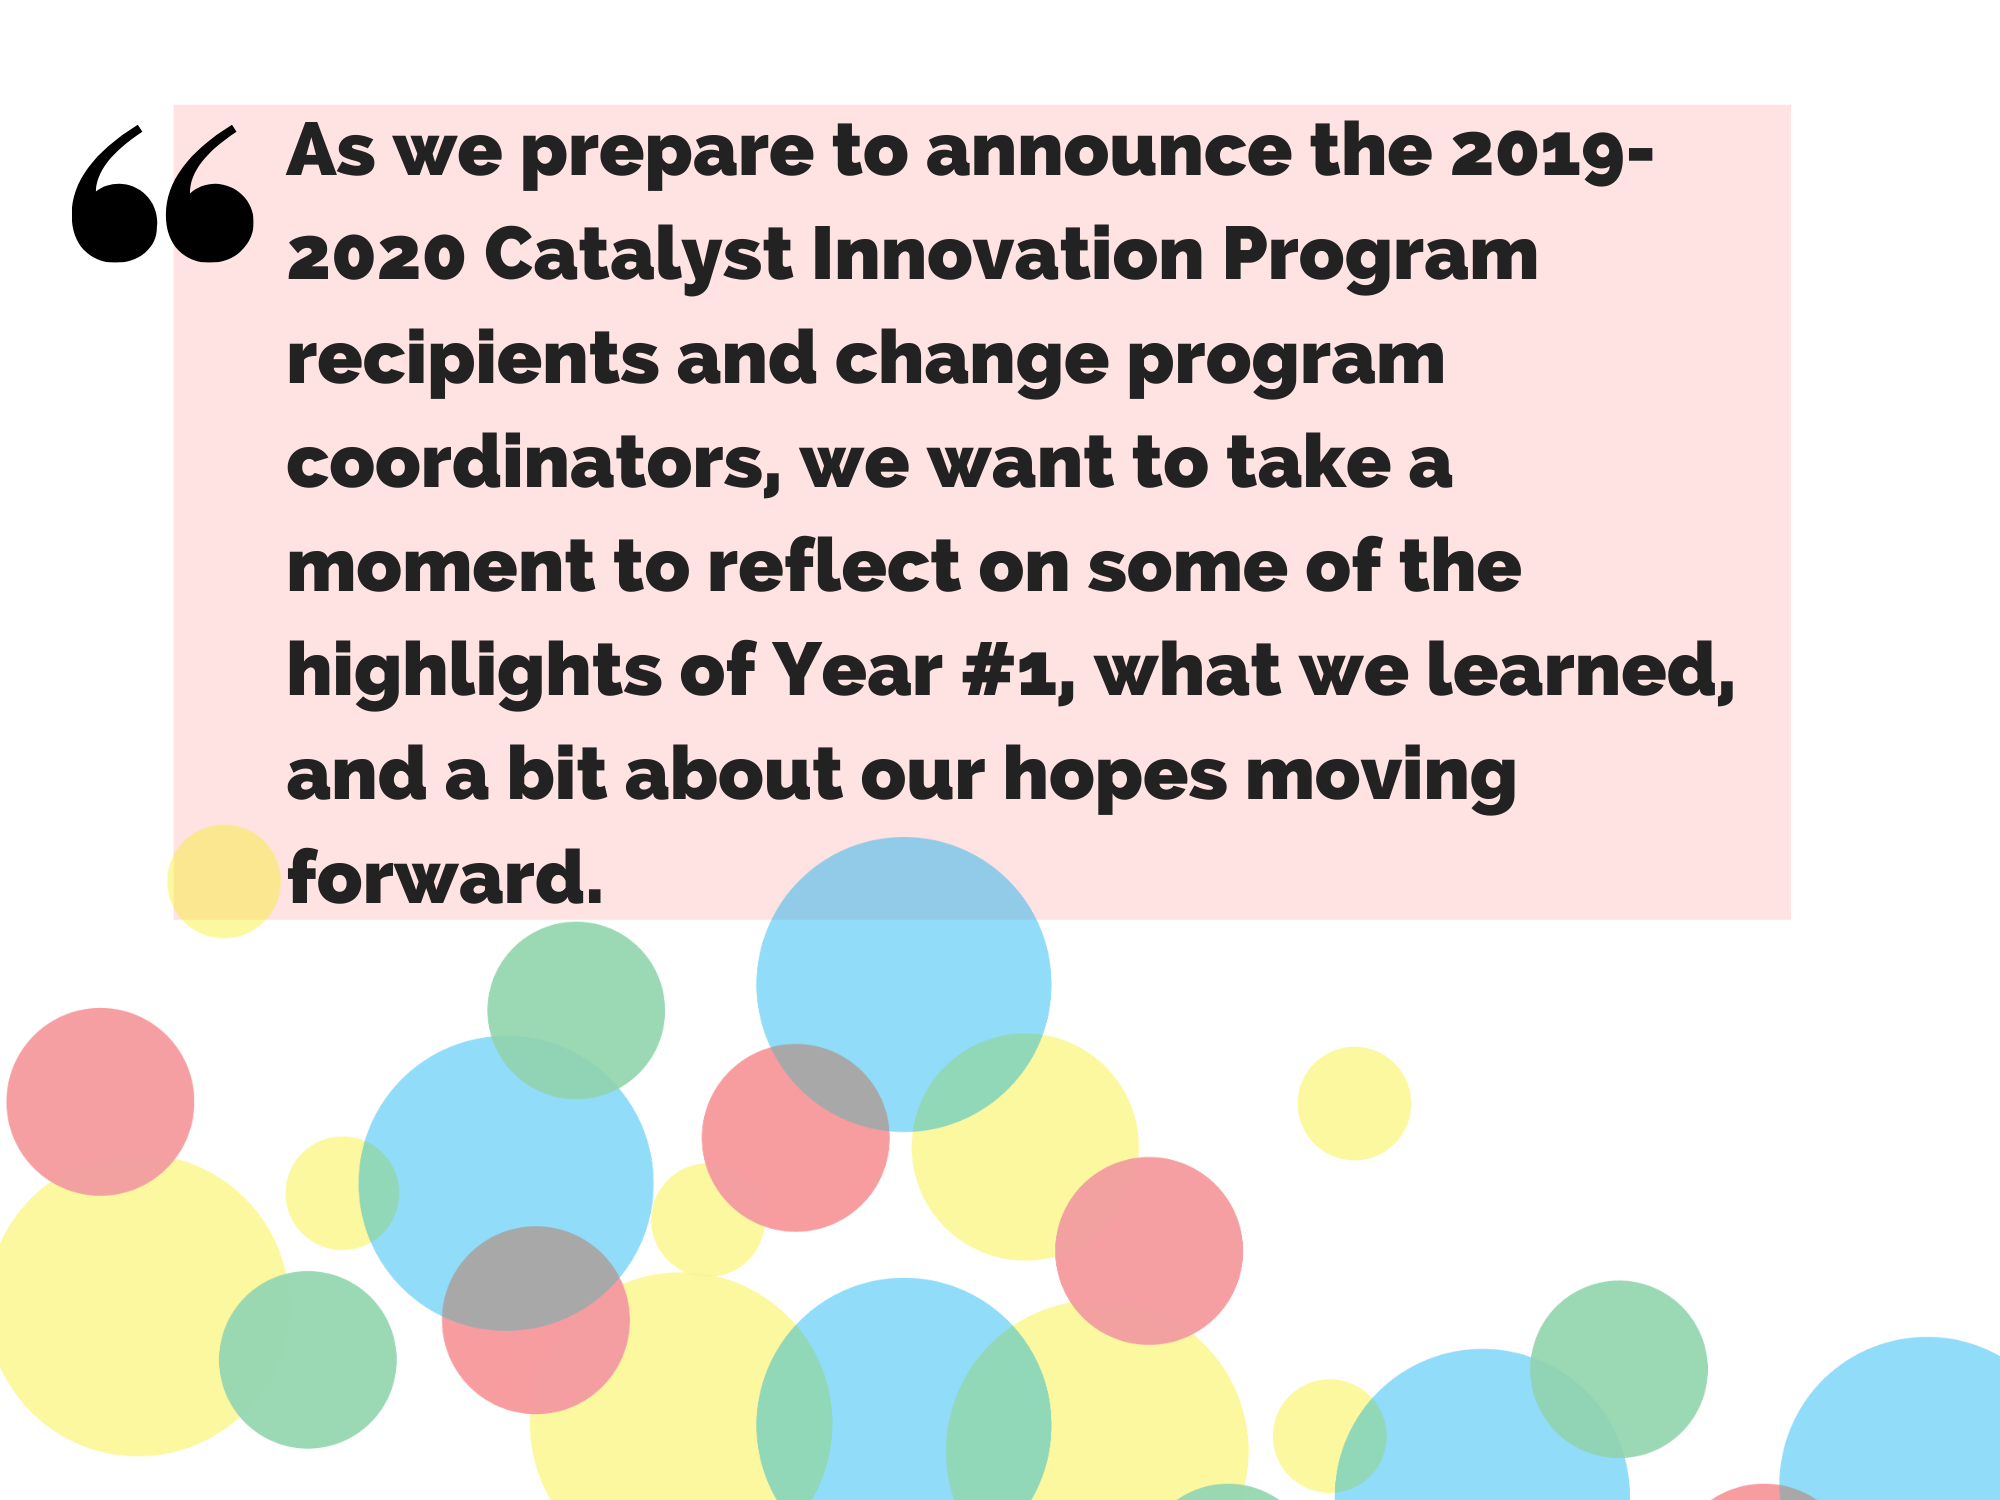 Quote: As we prepare to announg the 2019-20 Catalyst Innovation Program Recipients and change the program coordinators, we want to take a moment to reflect on some of the highlights of year #1, what we learned, and a bit about our hopes moving forward, said Jess Knott.